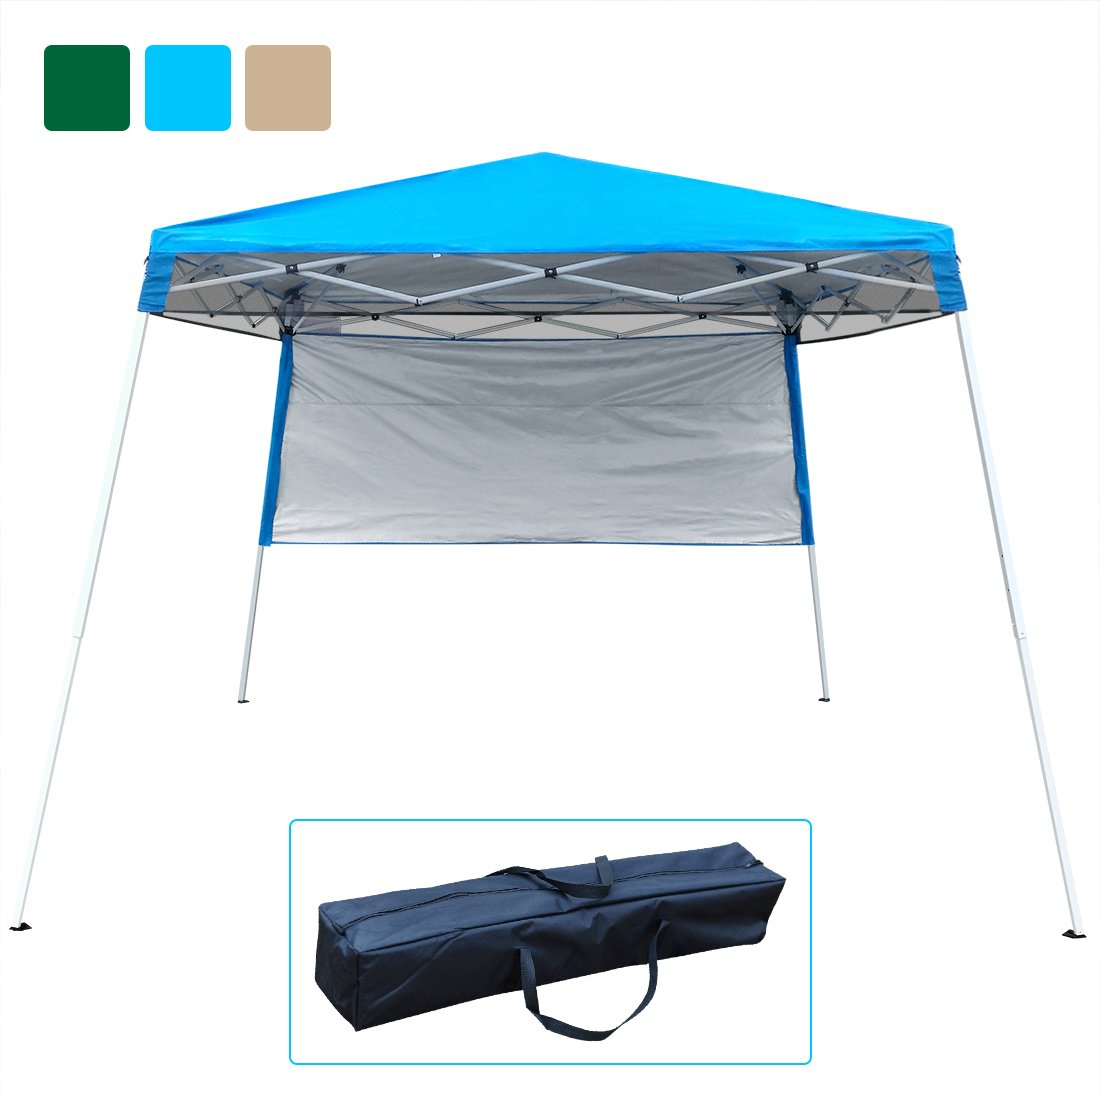 Quictent Silvox 10x10 EZ Pop Up Canopy Tent Instant Canopy Party Tent 8.7 ft height 4 Walls W/Free Carry Bag 100% Waterproof-7 Colors (Light Blue no sidewall)